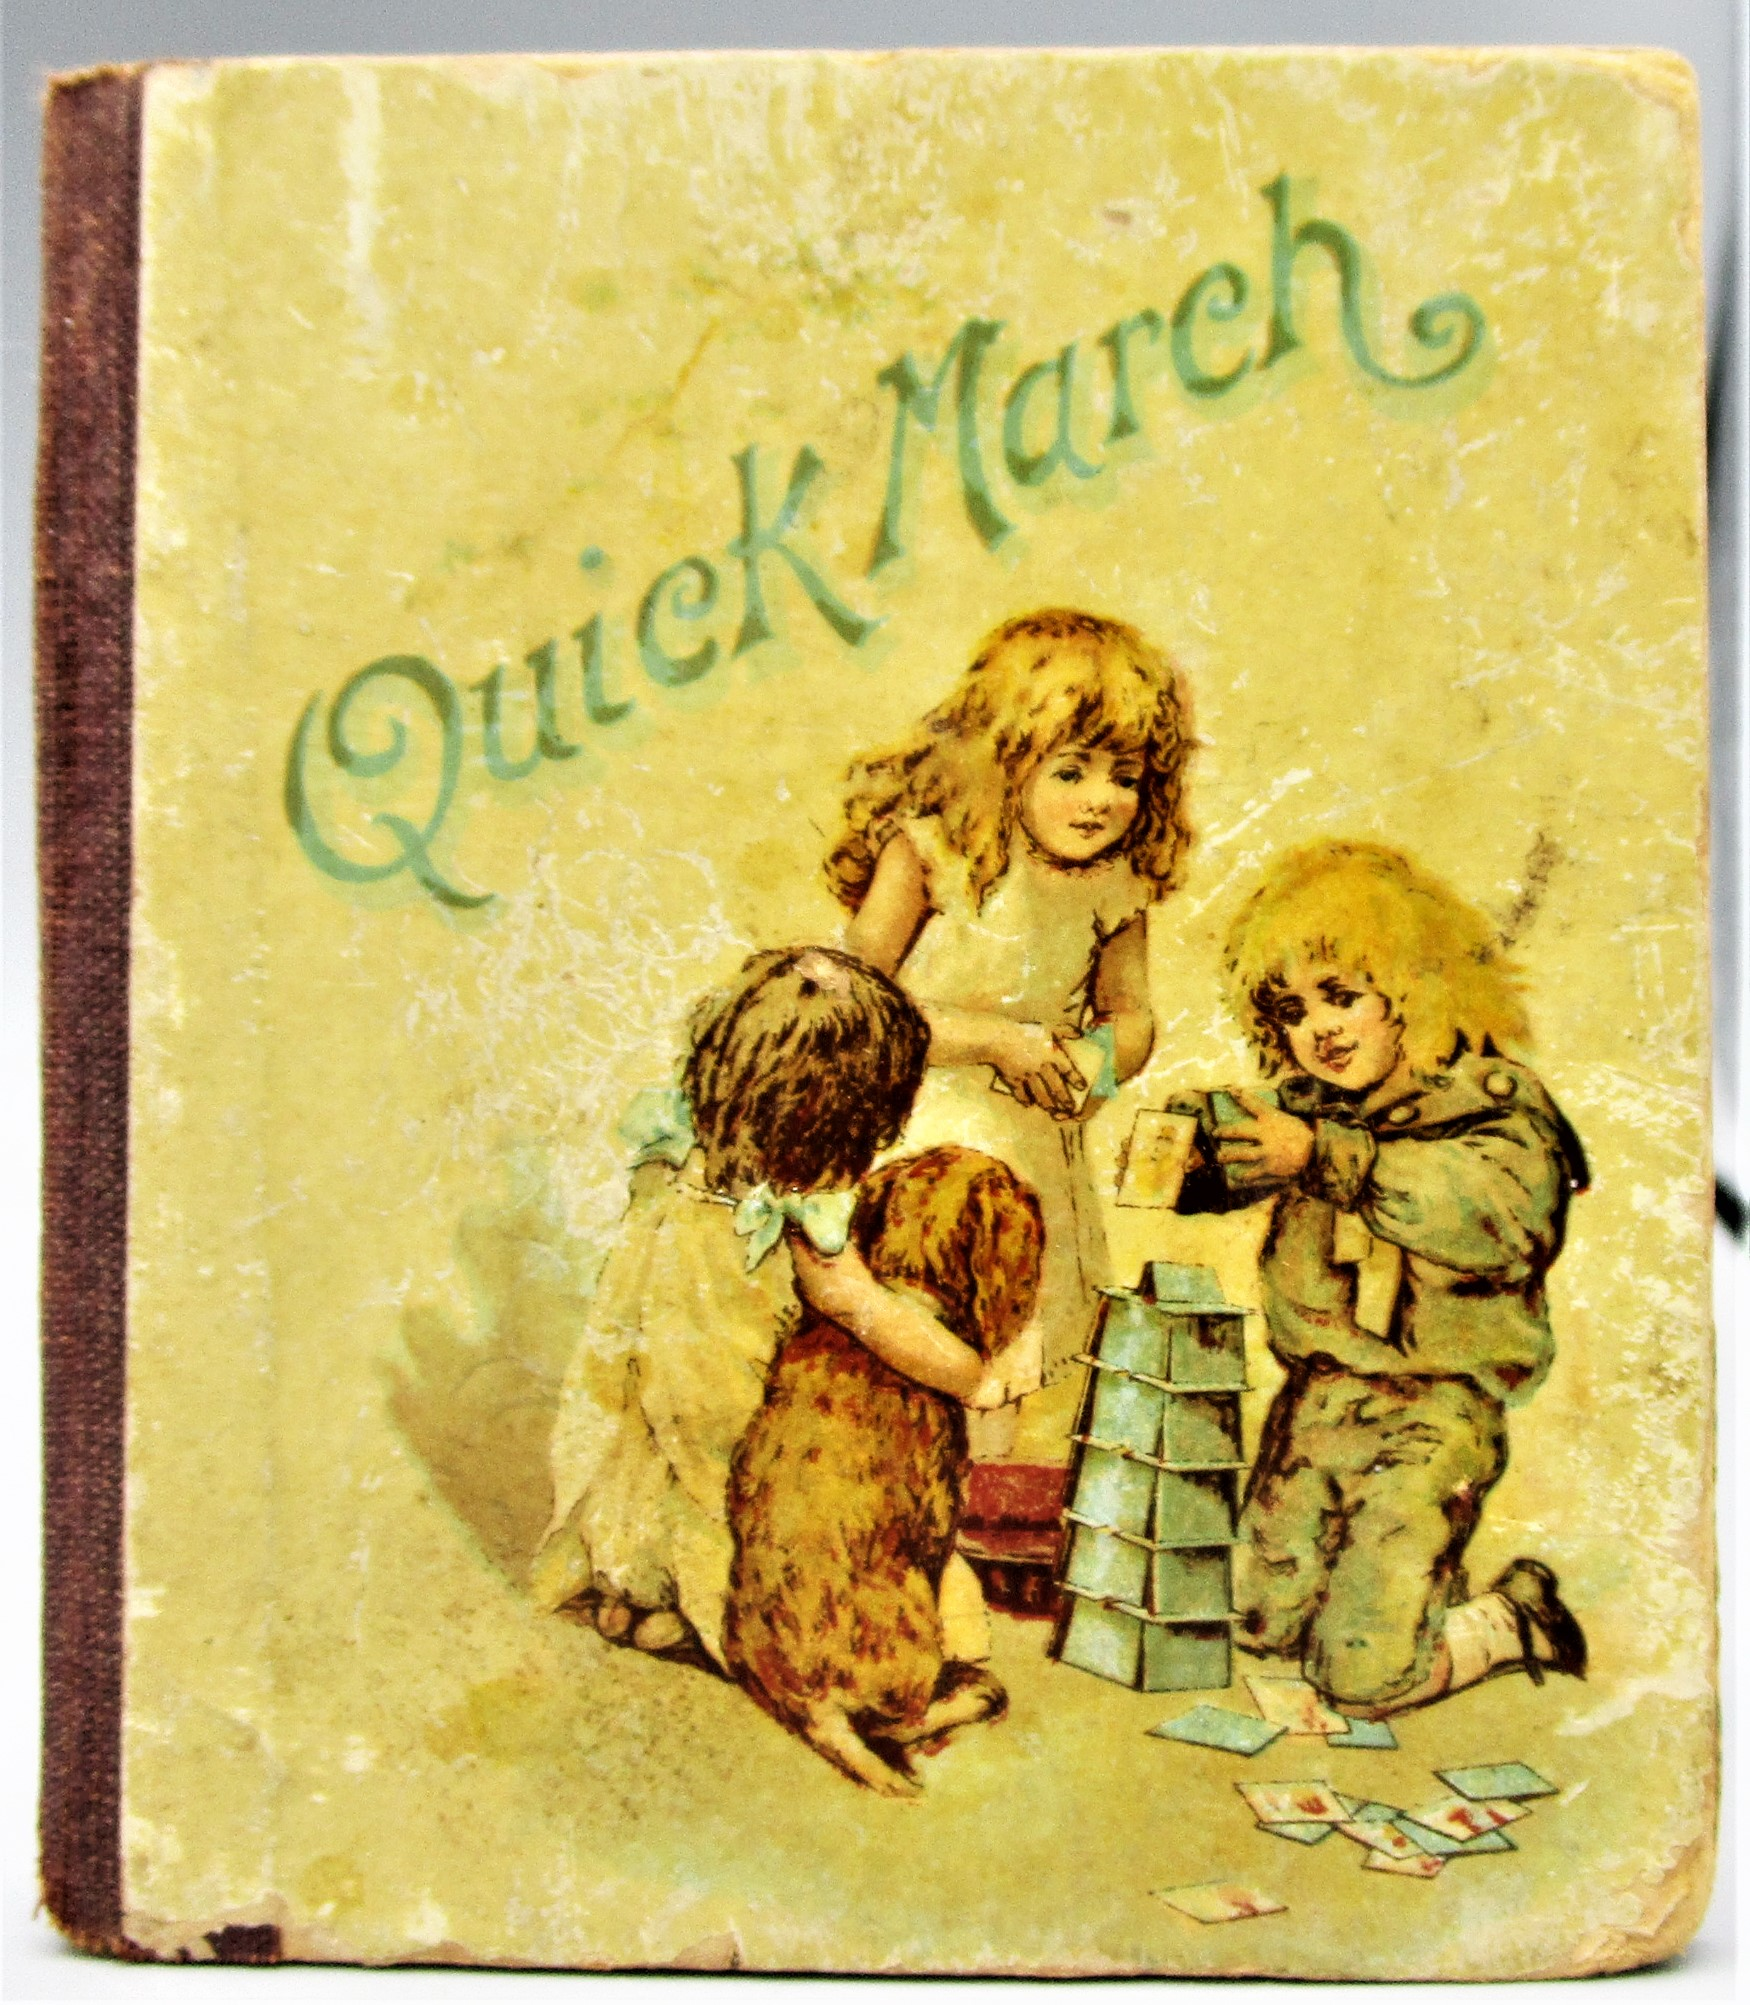 QUICK, MARCH!, by L. Haskell - 1890